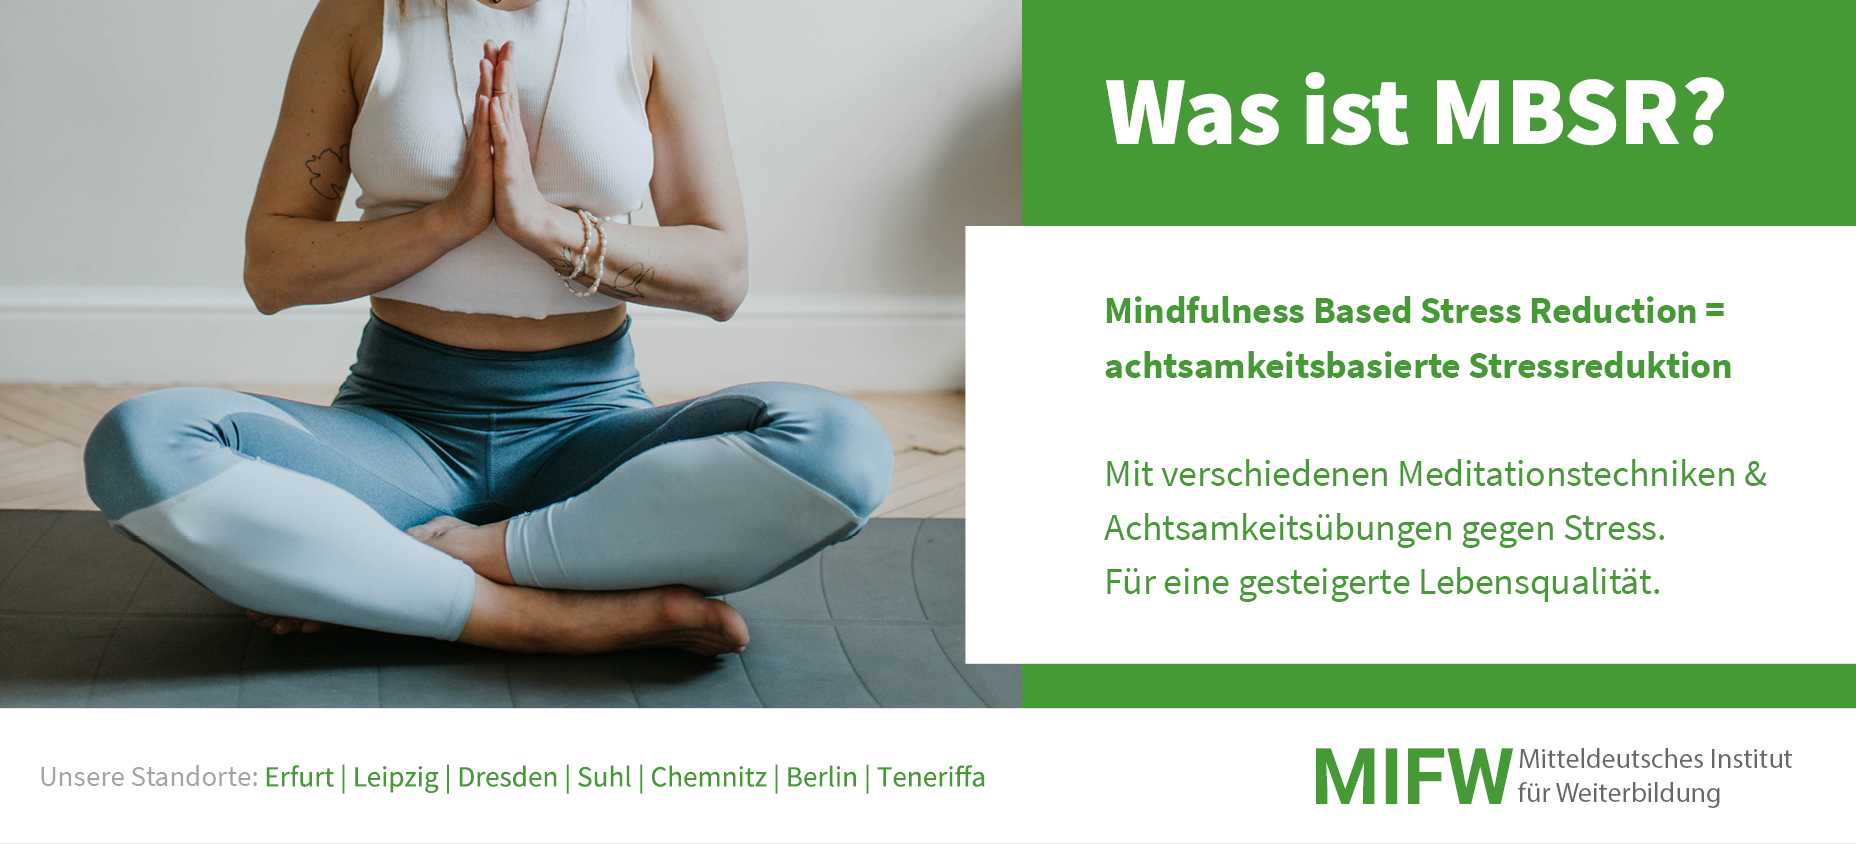 Was ist MBSR?